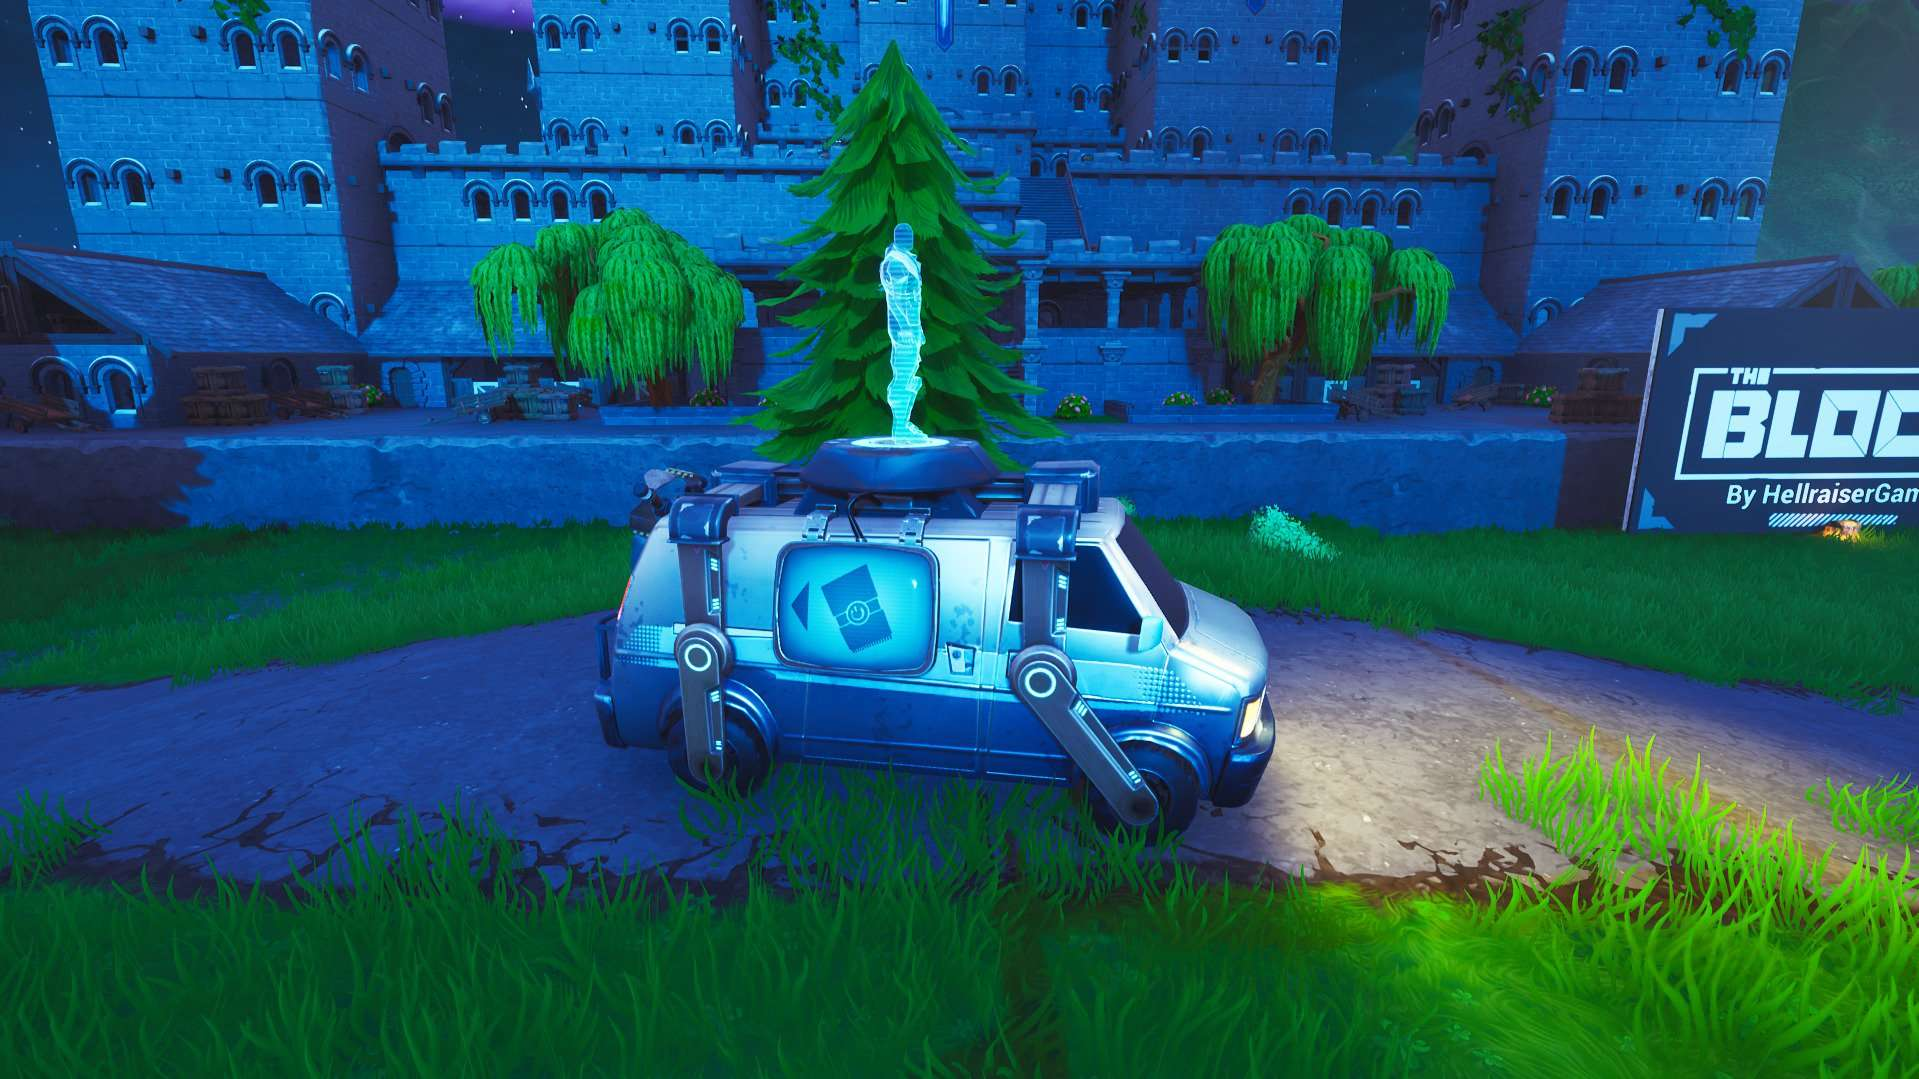 Fortnite Adds Respawn Vans To Game; A Boon Or Bane To Gamers?